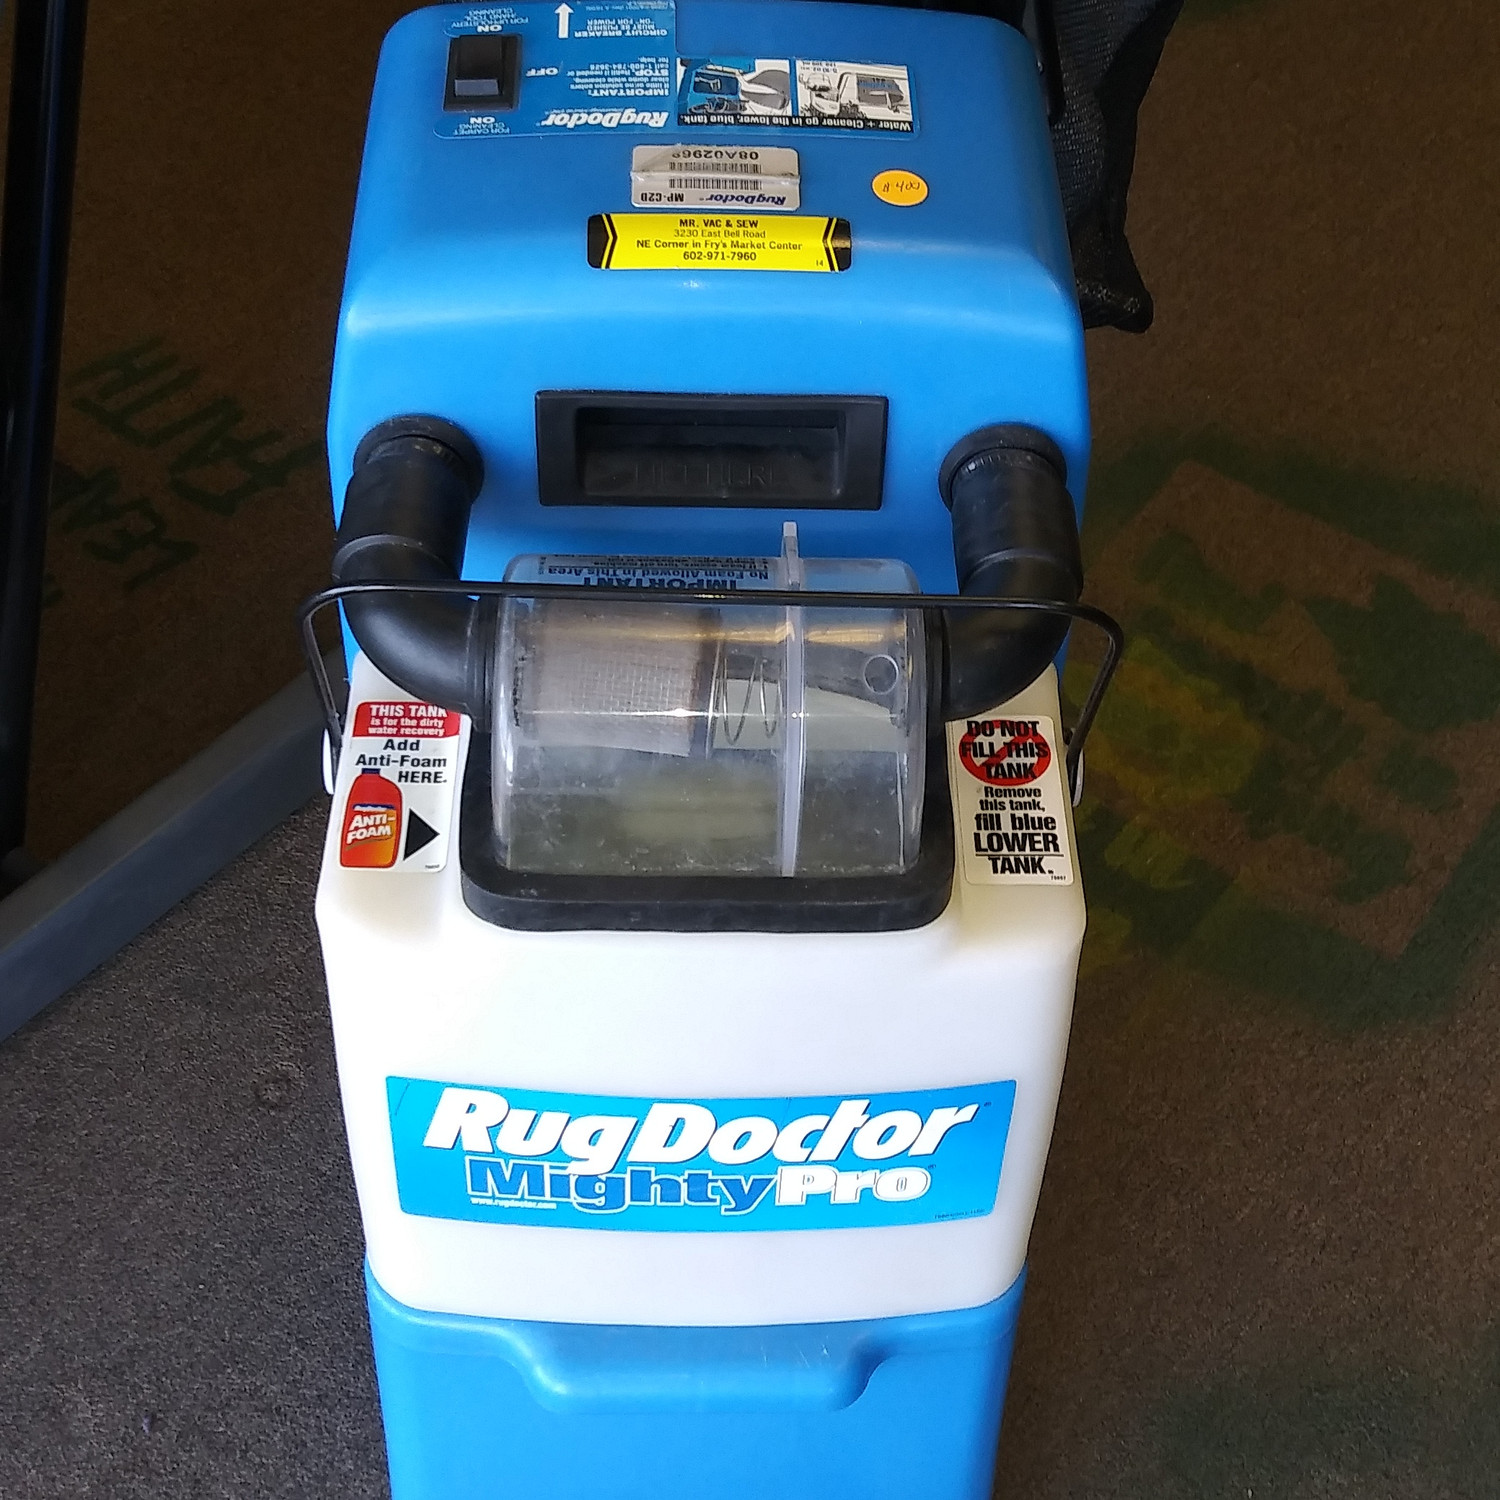 Rent the Rug Doctor Mightypro (24 hours)